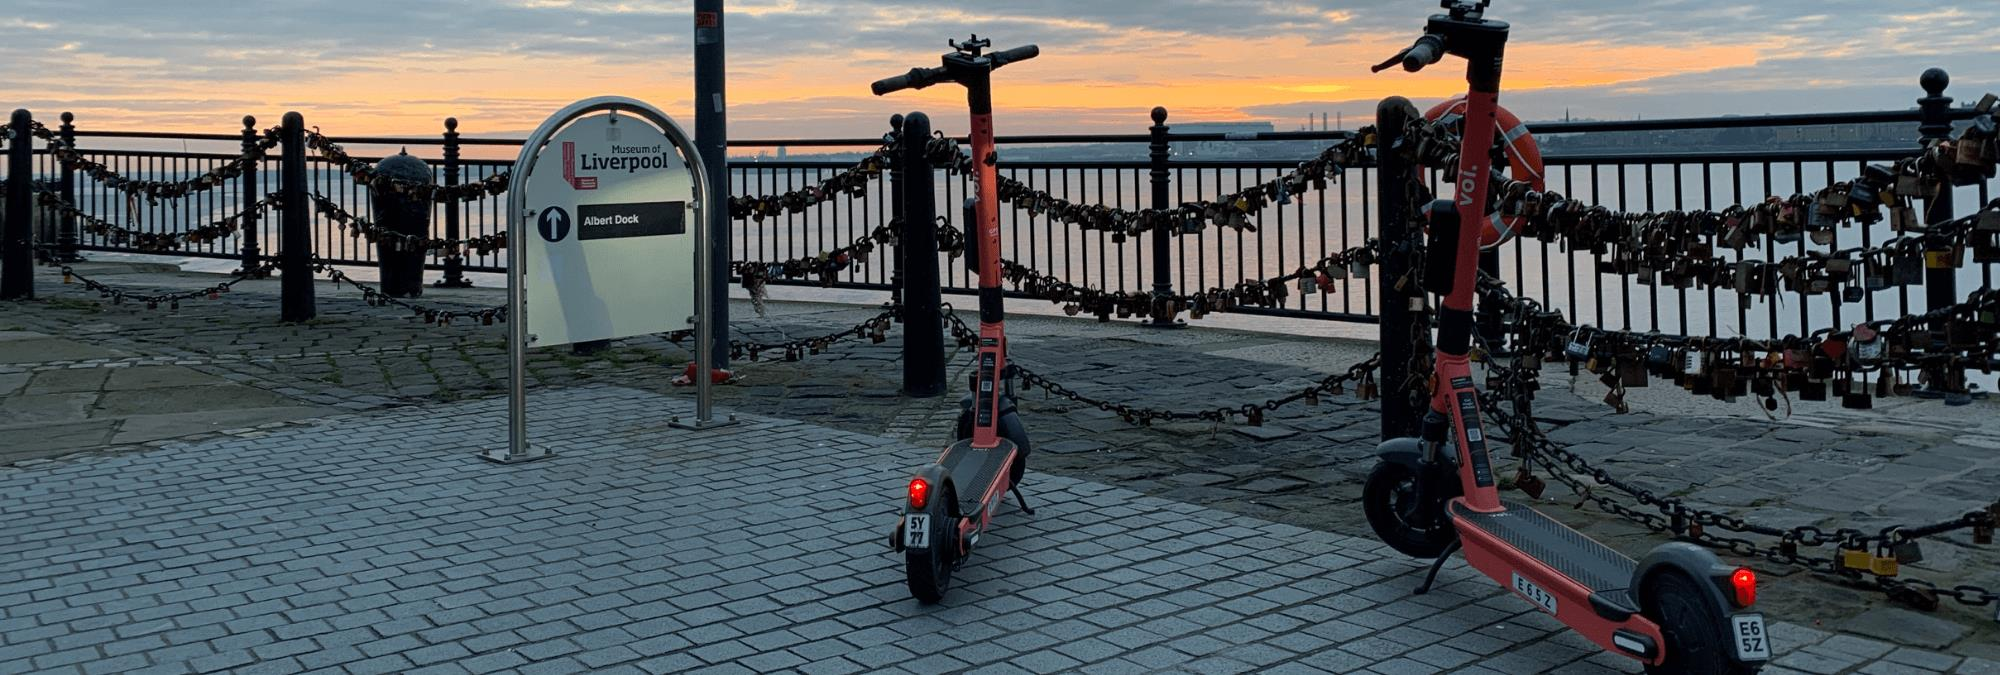 Two orange 'voi' scooters are propped on the waterfront. There is an orange sunset and love locks hang off the railings.